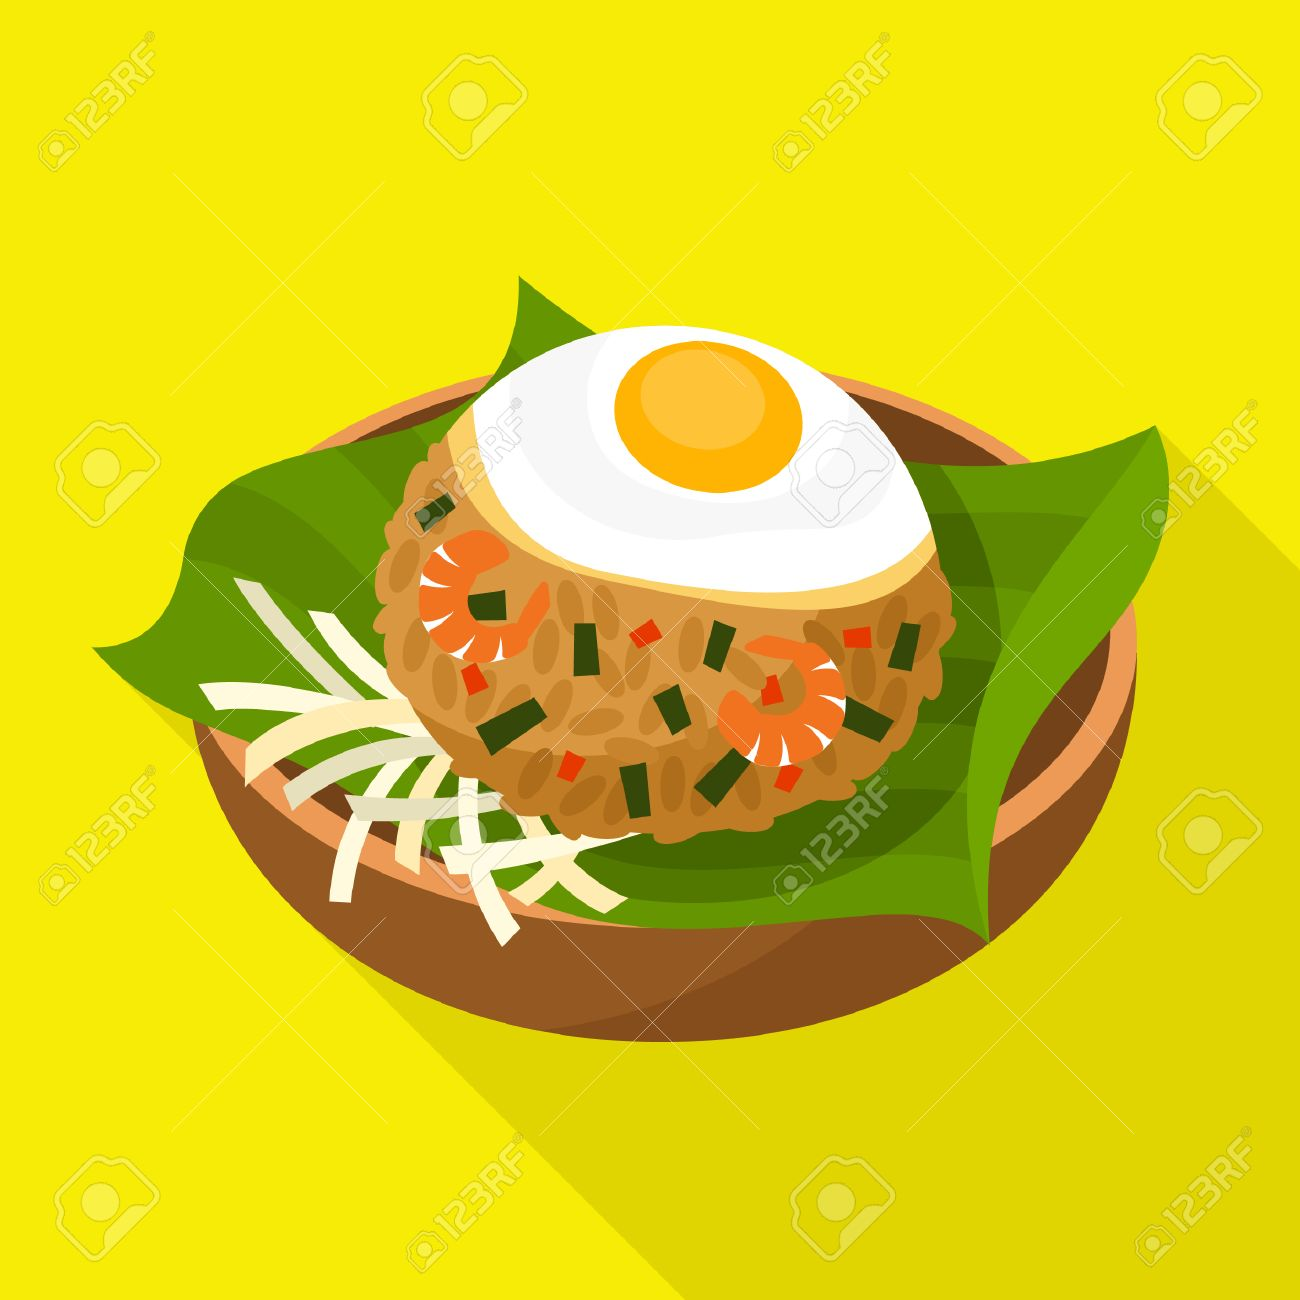 nasi goreng icon indonesian fried rice royalty free cliparts vectors and stock illustration image 39840570 nasi goreng icon indonesian fried rice